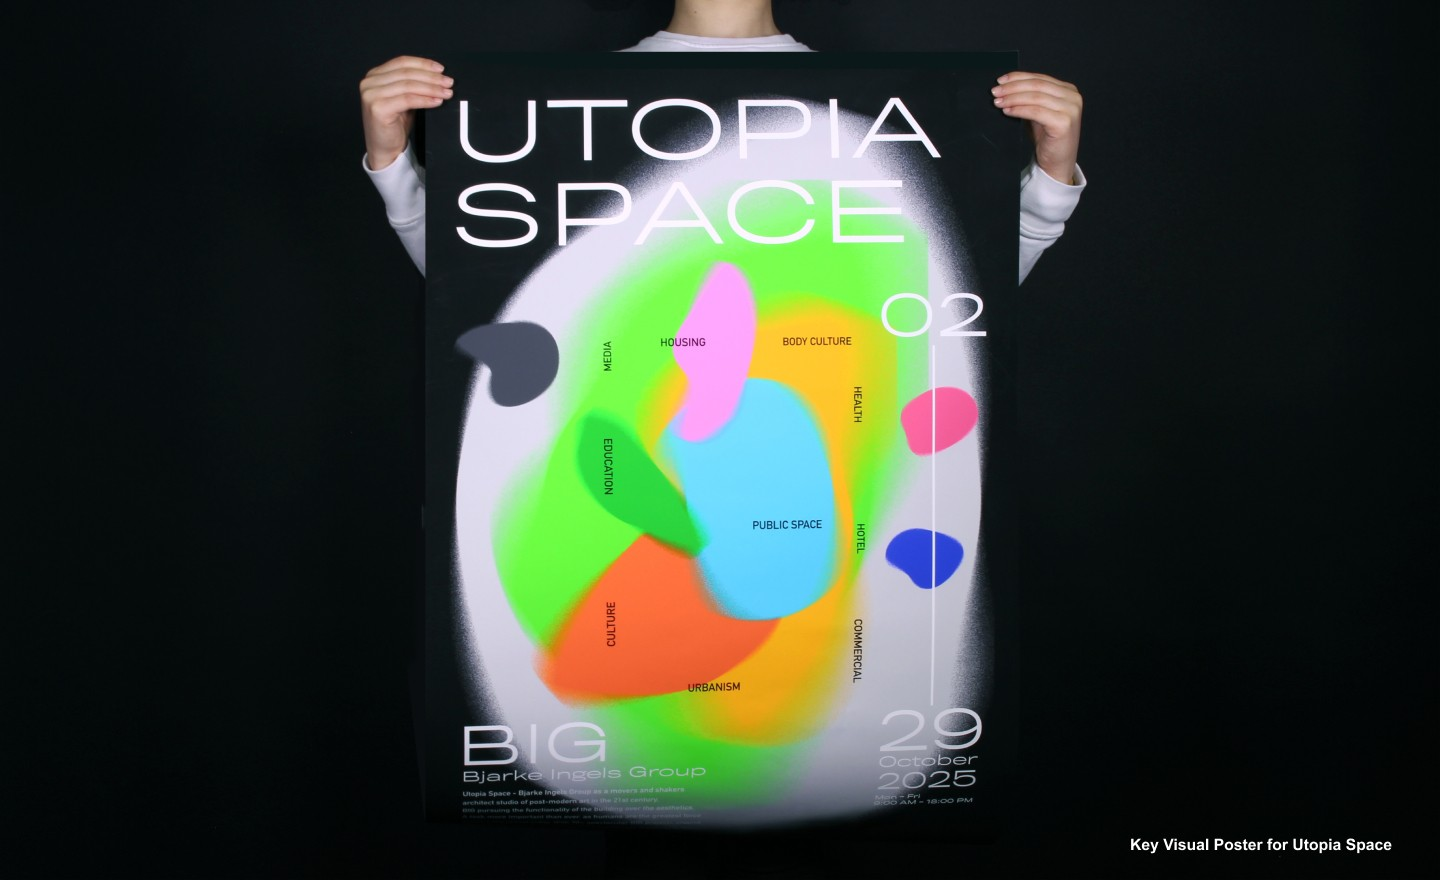 """Utopia Space is a visual identity created for an exhibition in Tate with the same name. The exhibition is showing the architectural work of Bjarke Ingels, the collaborator of BIG Architecture. The name """"Utopia Space"""" is a summary of Ingels' design: bearin"""